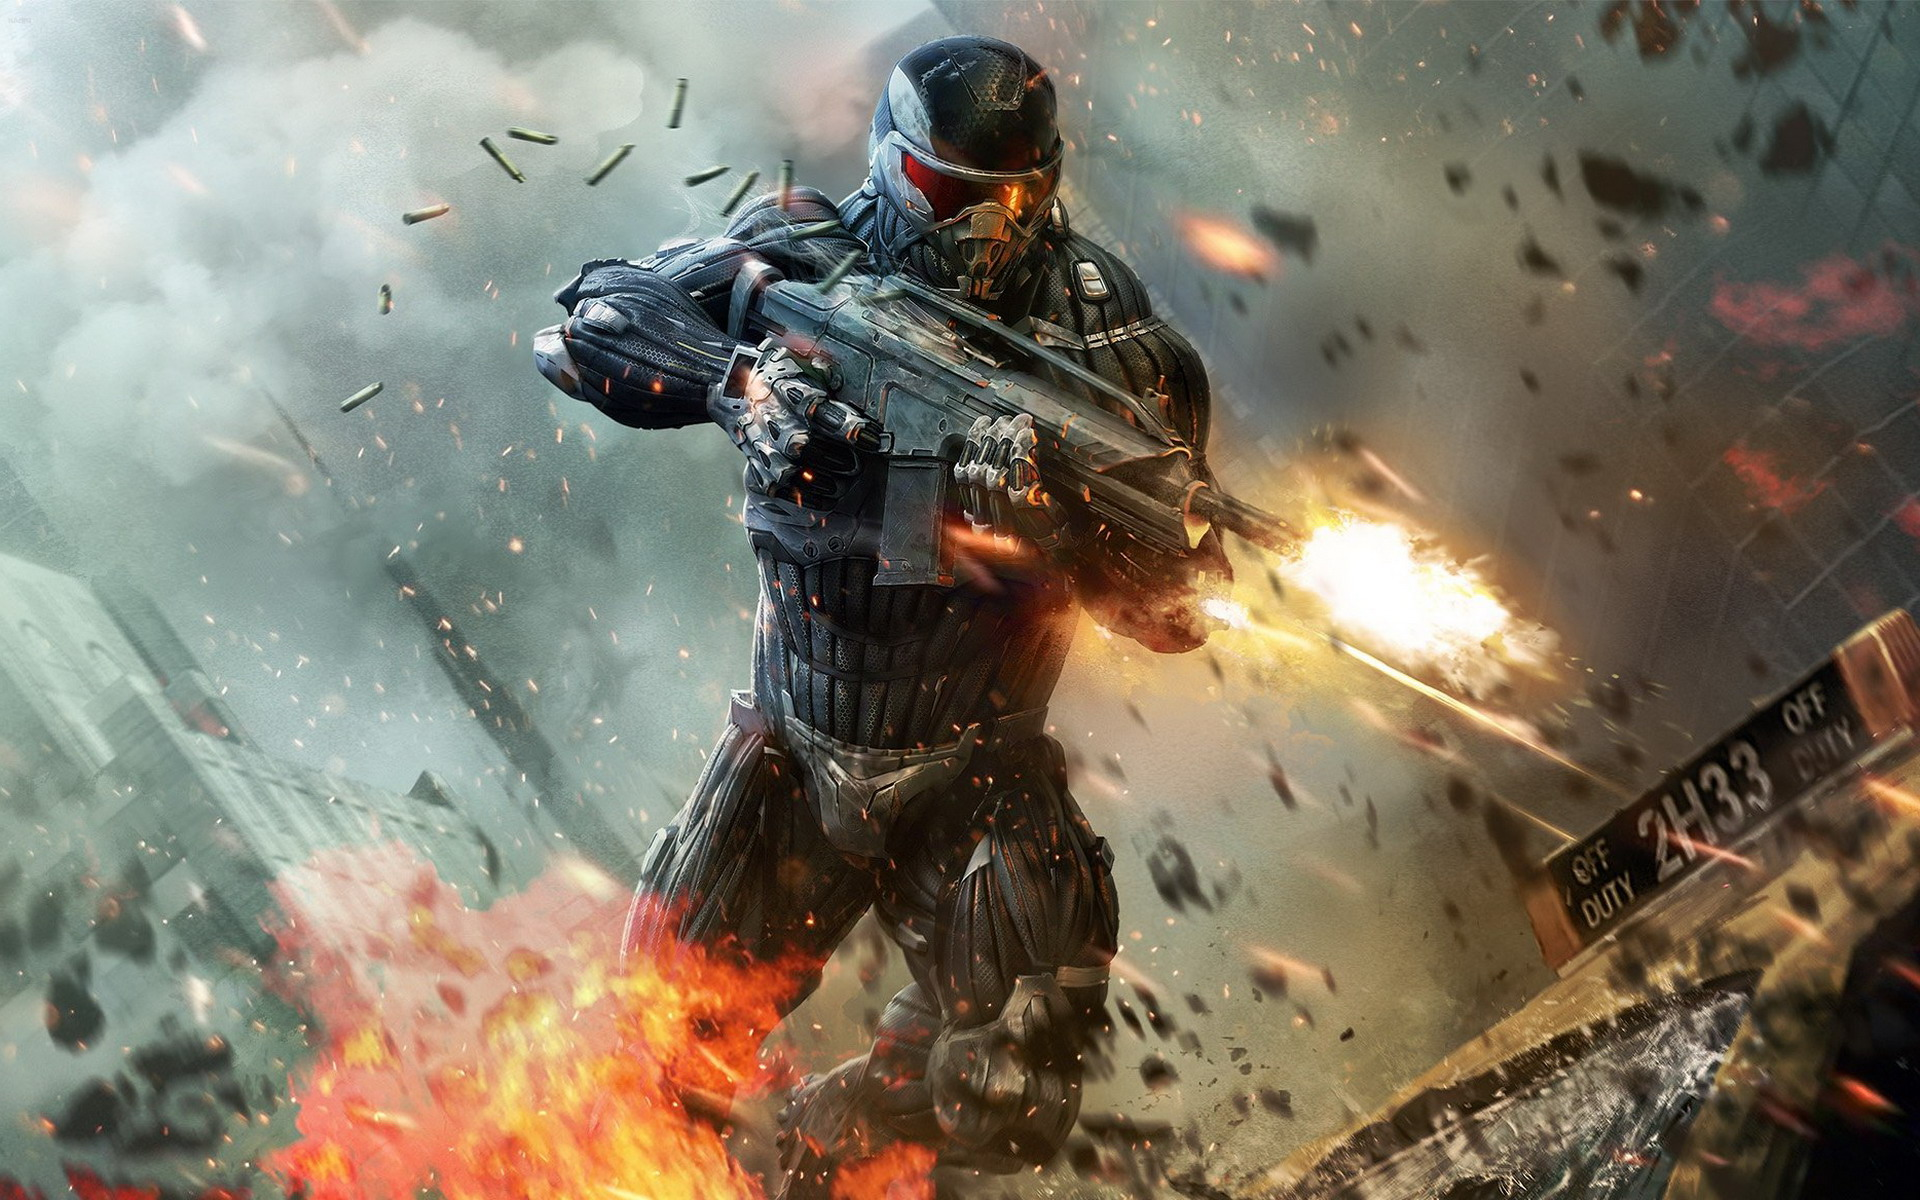 Mind Blowing Crysis  Wallpaper Phone  te Crysis  Computer Wallpapers, Desktop Backgrounds  ID 1920x1200